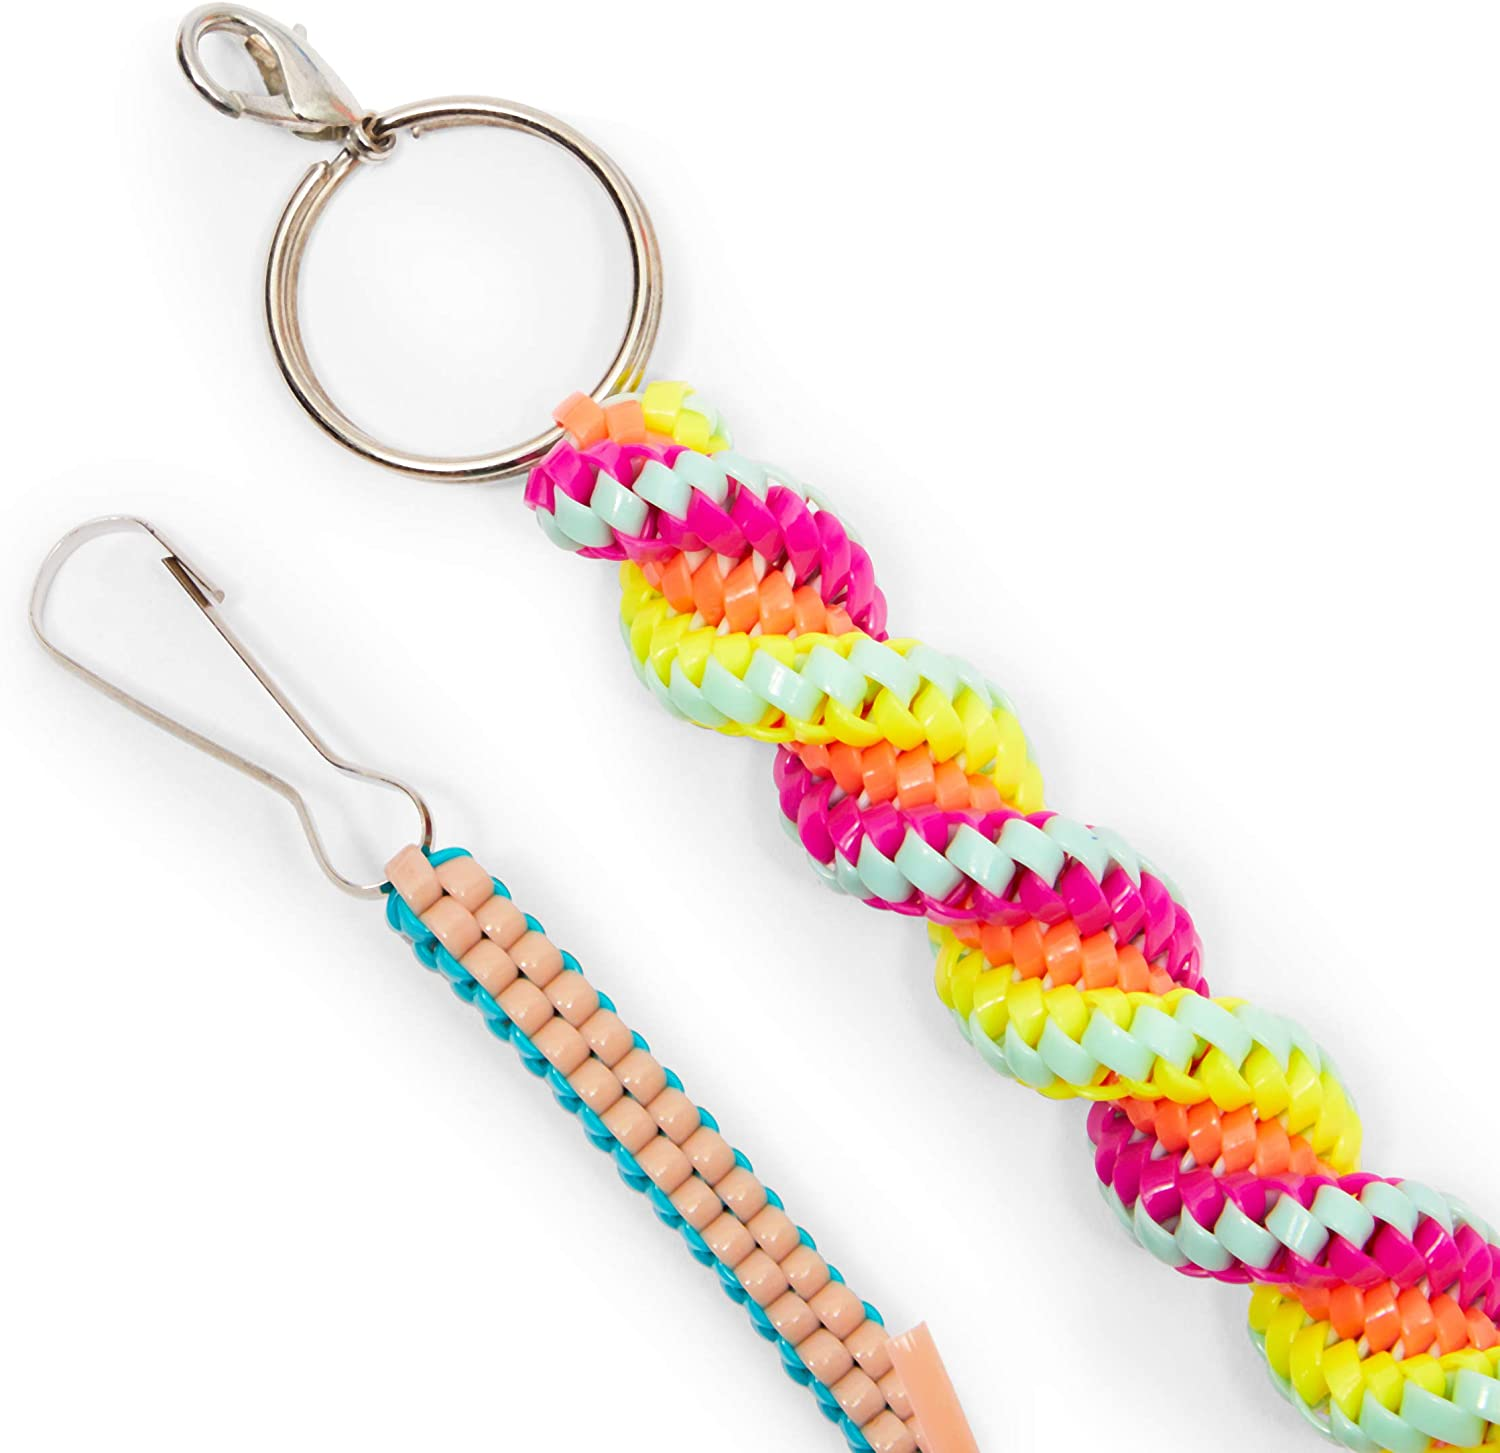 40 Yards, 100 Pieces Plastic Lacing Cord Kit 30 Key Chain Rings 30 Clasps 30 Hooks 10 Colors